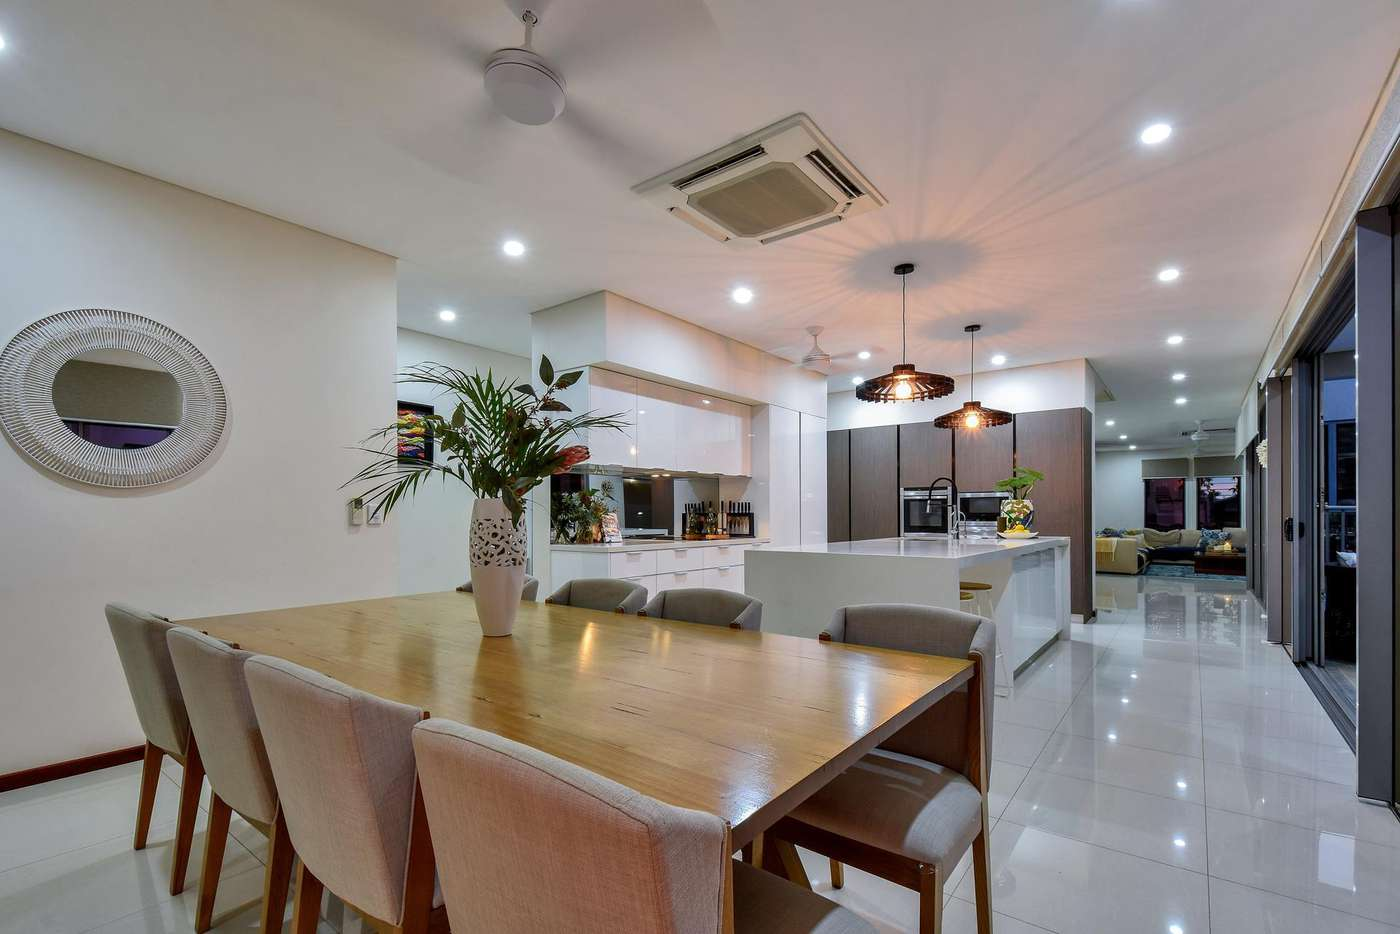 Seventh view of Homely house listing, 22 Bowditch Street, Muirhead NT 810